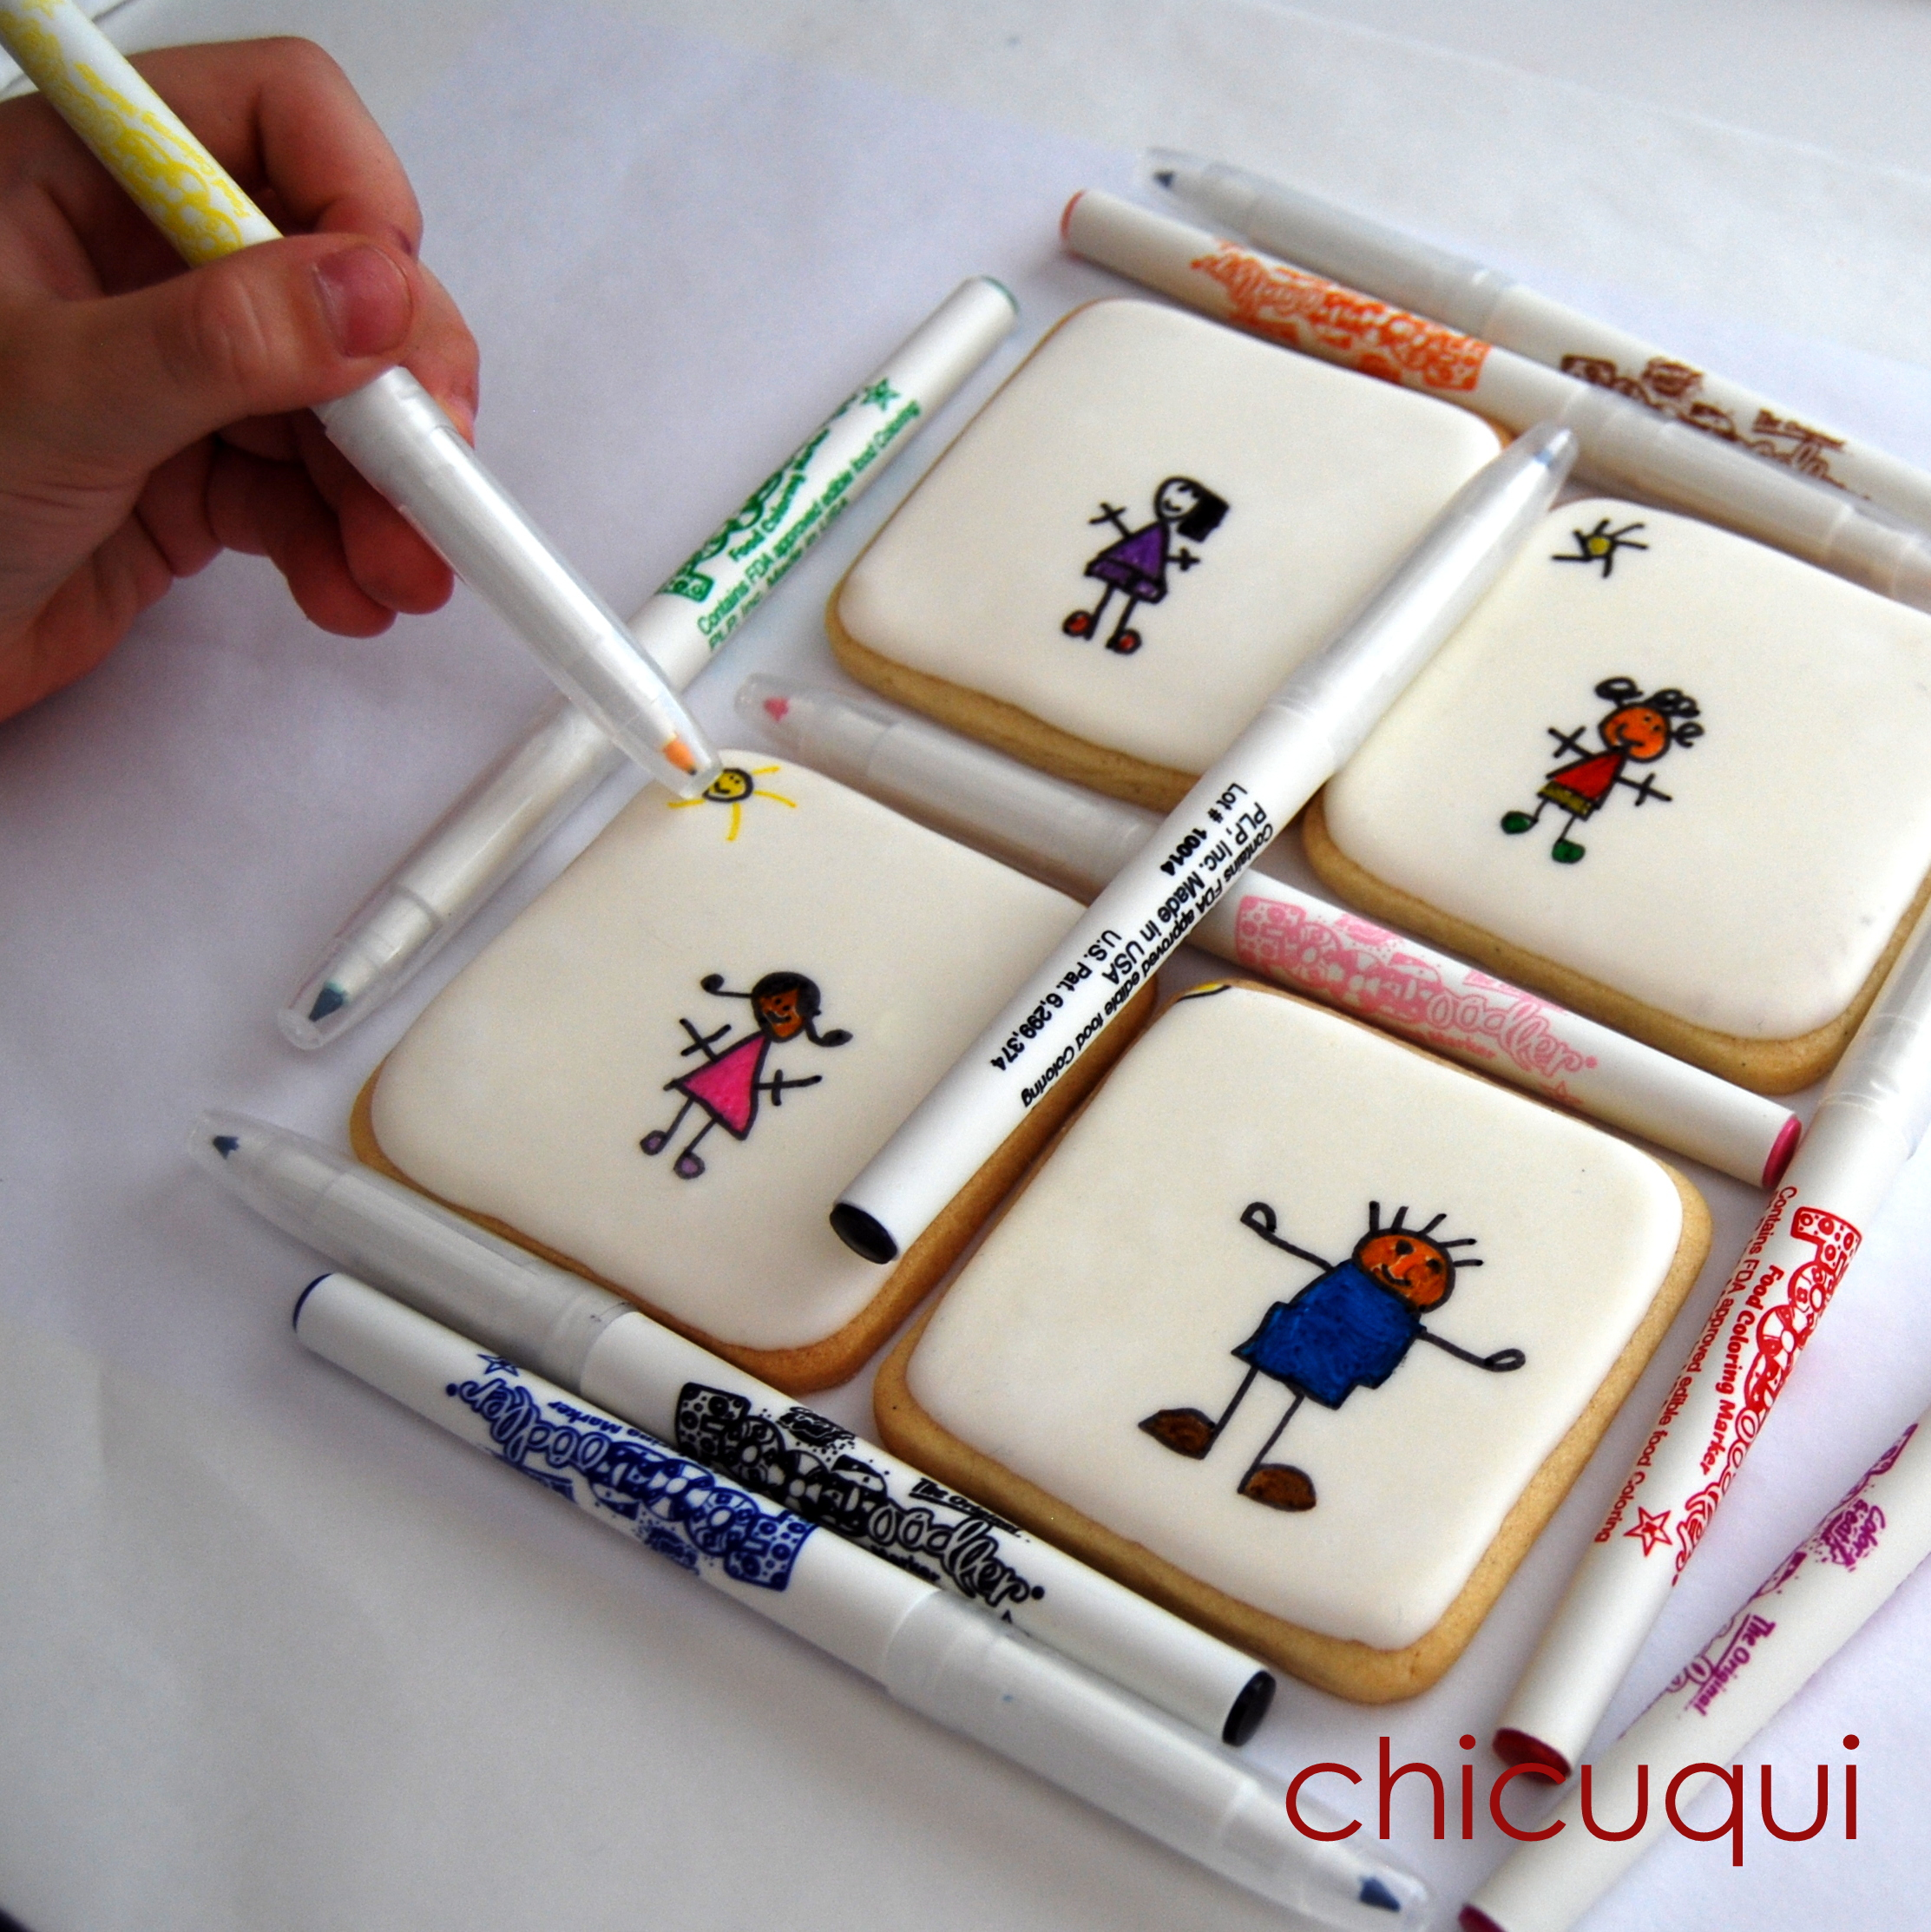 C mo hacer galletas decoradas con ni os divertid simas for Ideas faciles decoracion